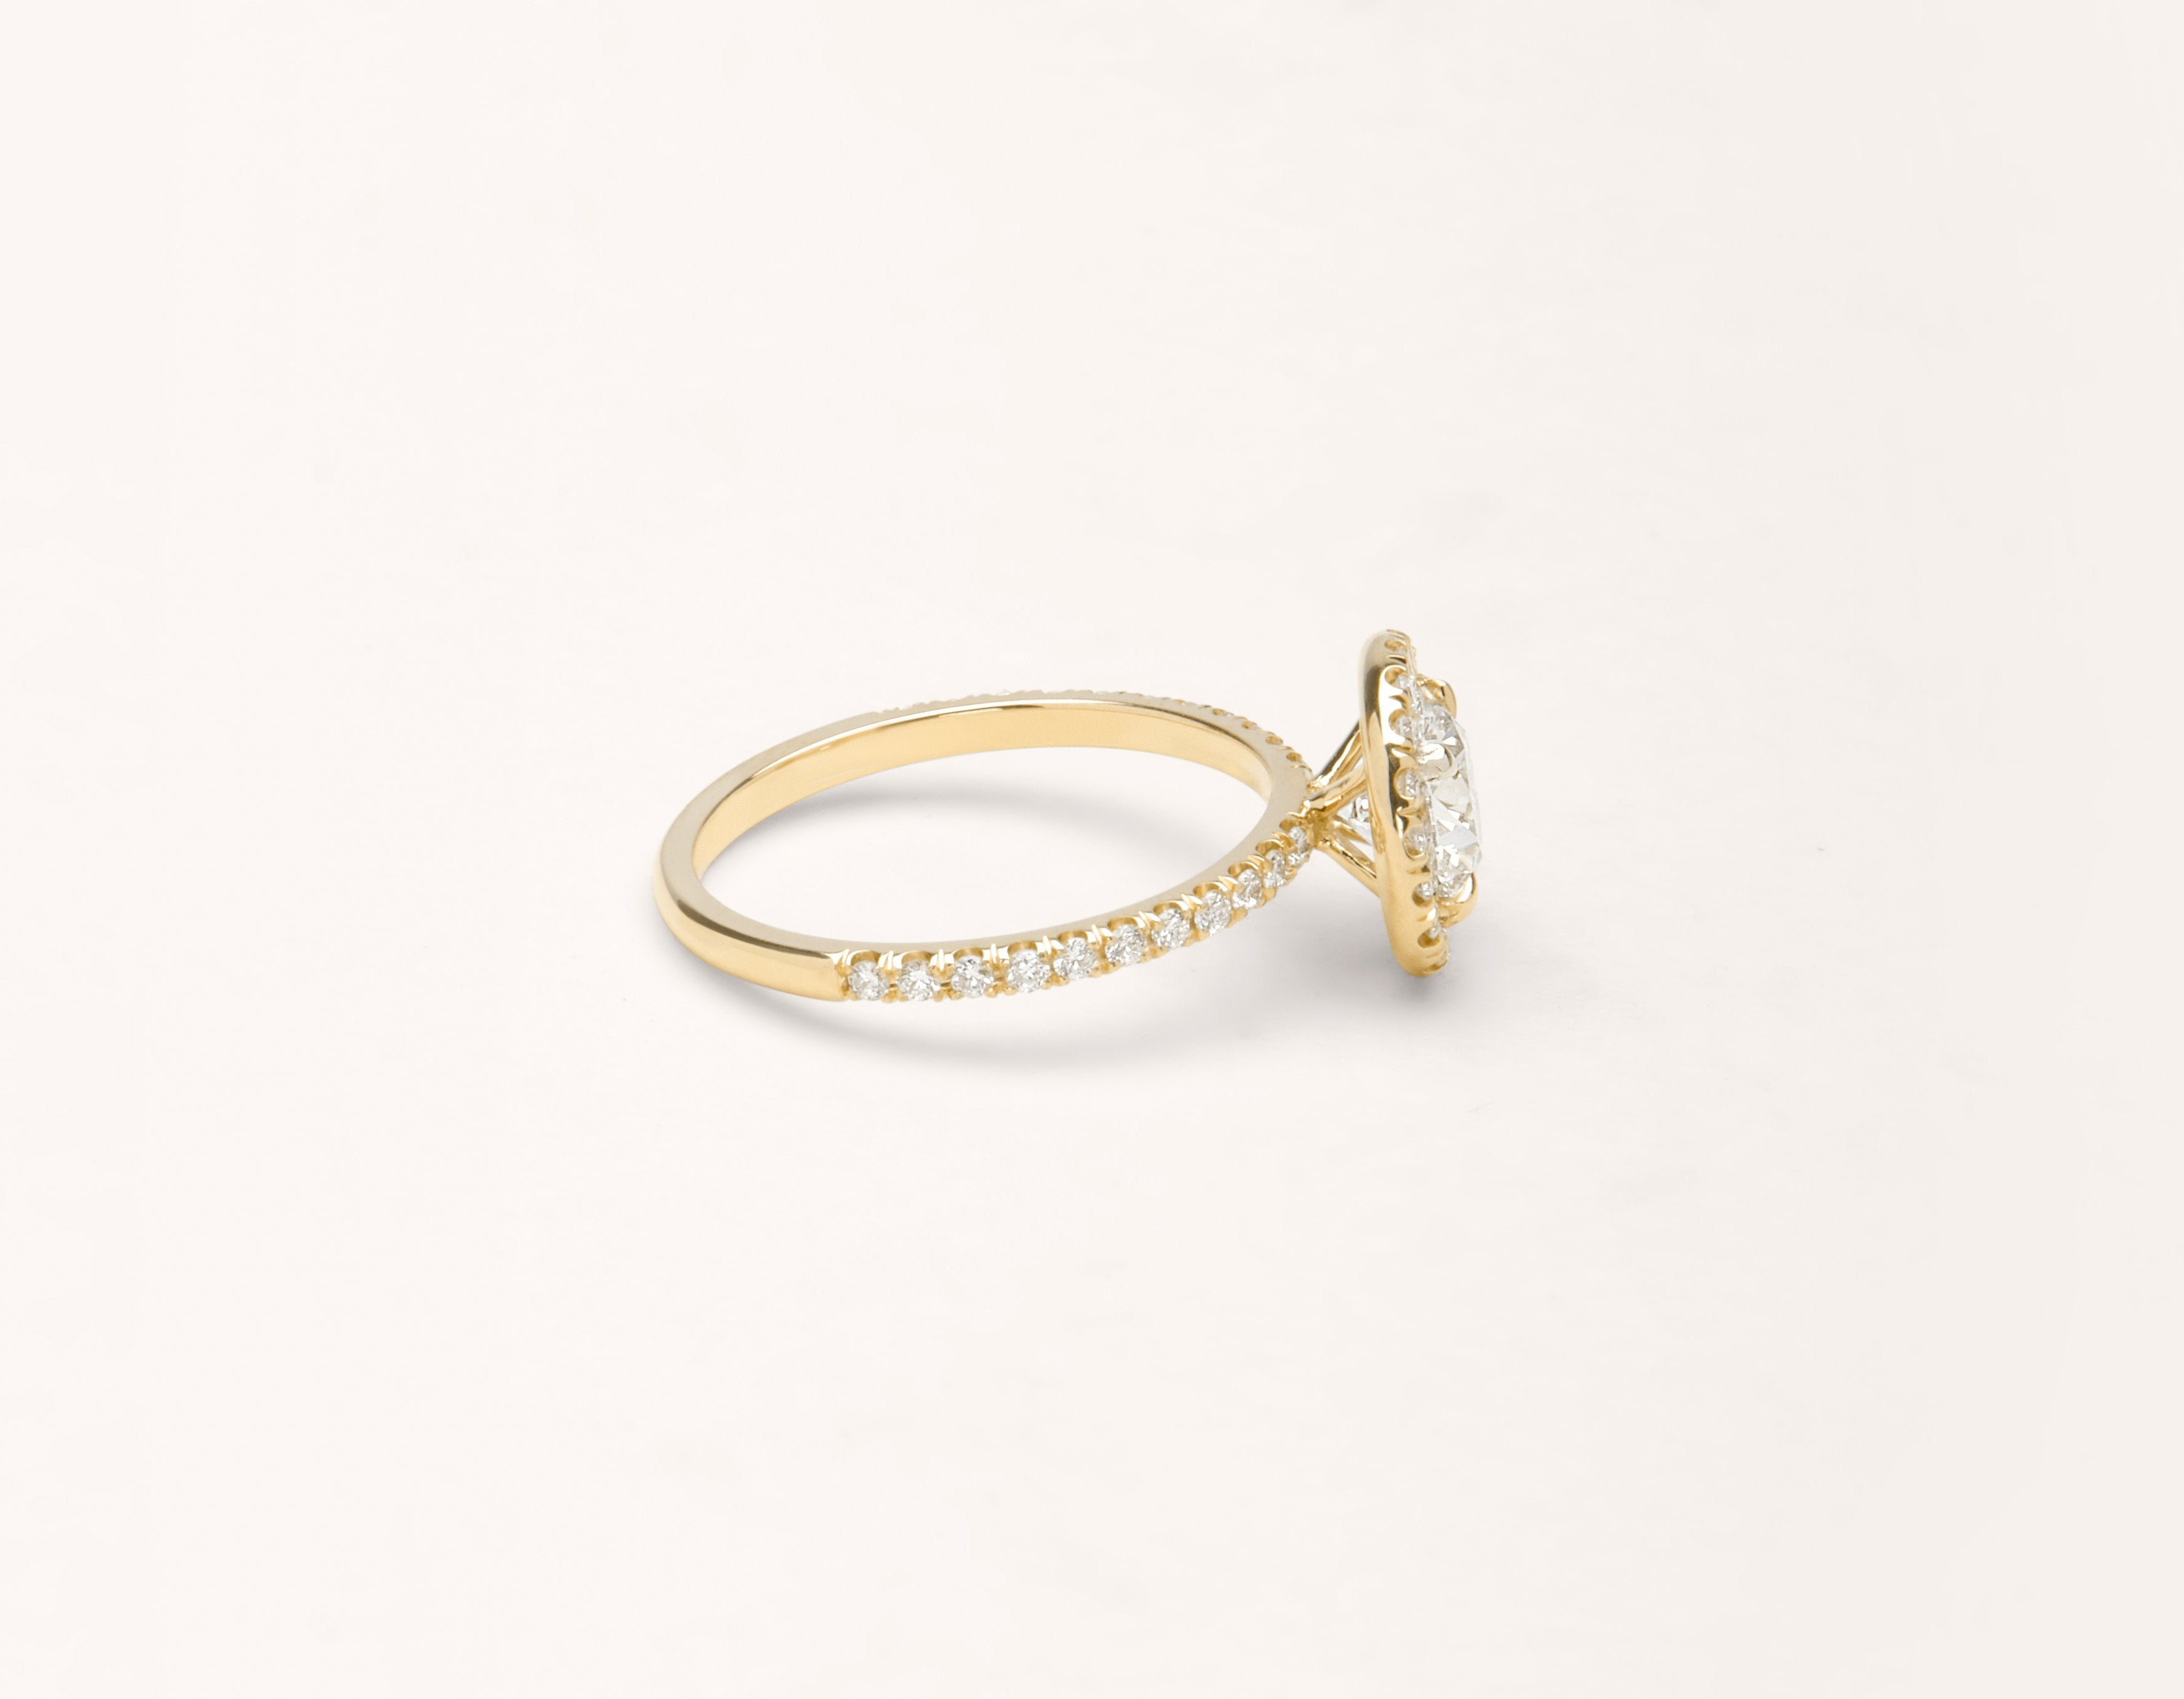 c7af446f7bd Simple modern 18k solid yellow gold 1 carat Halo diamond pave engagement  ring Vrai   Oro